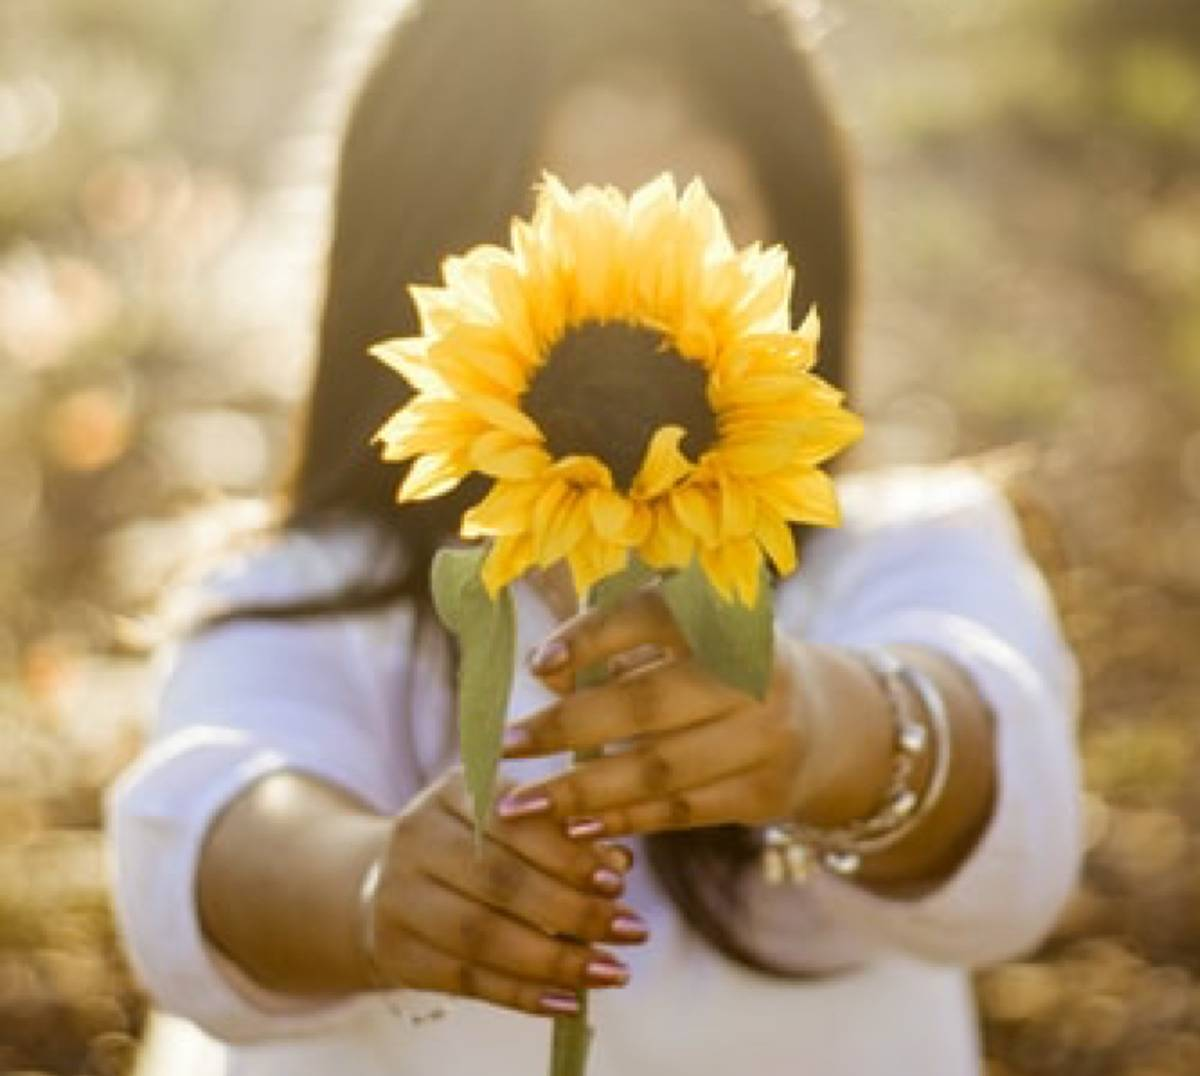 woman with sunflower in front of her face posing in front of camera